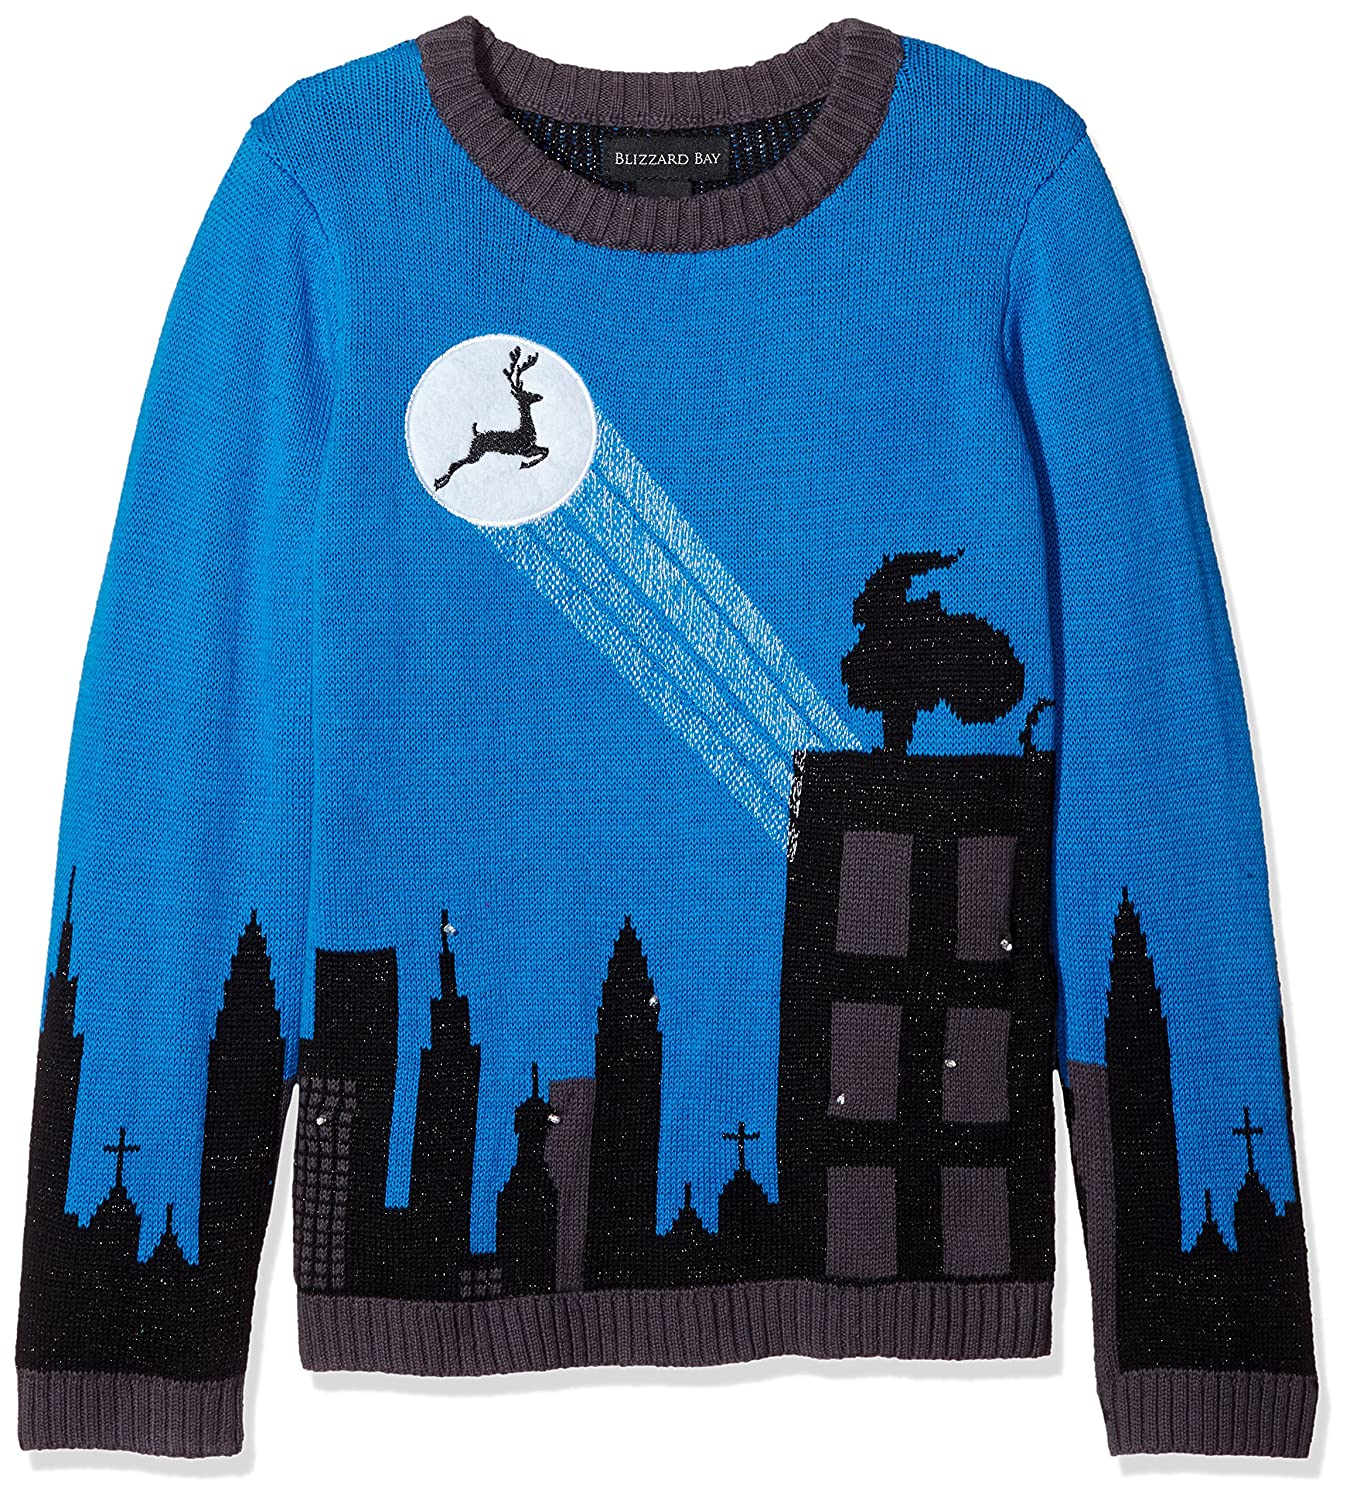 Blizzard Bay Boys' Big Cityscape Light-up Reindeer Sweater Blizzard Bay Boys 8-20 27493